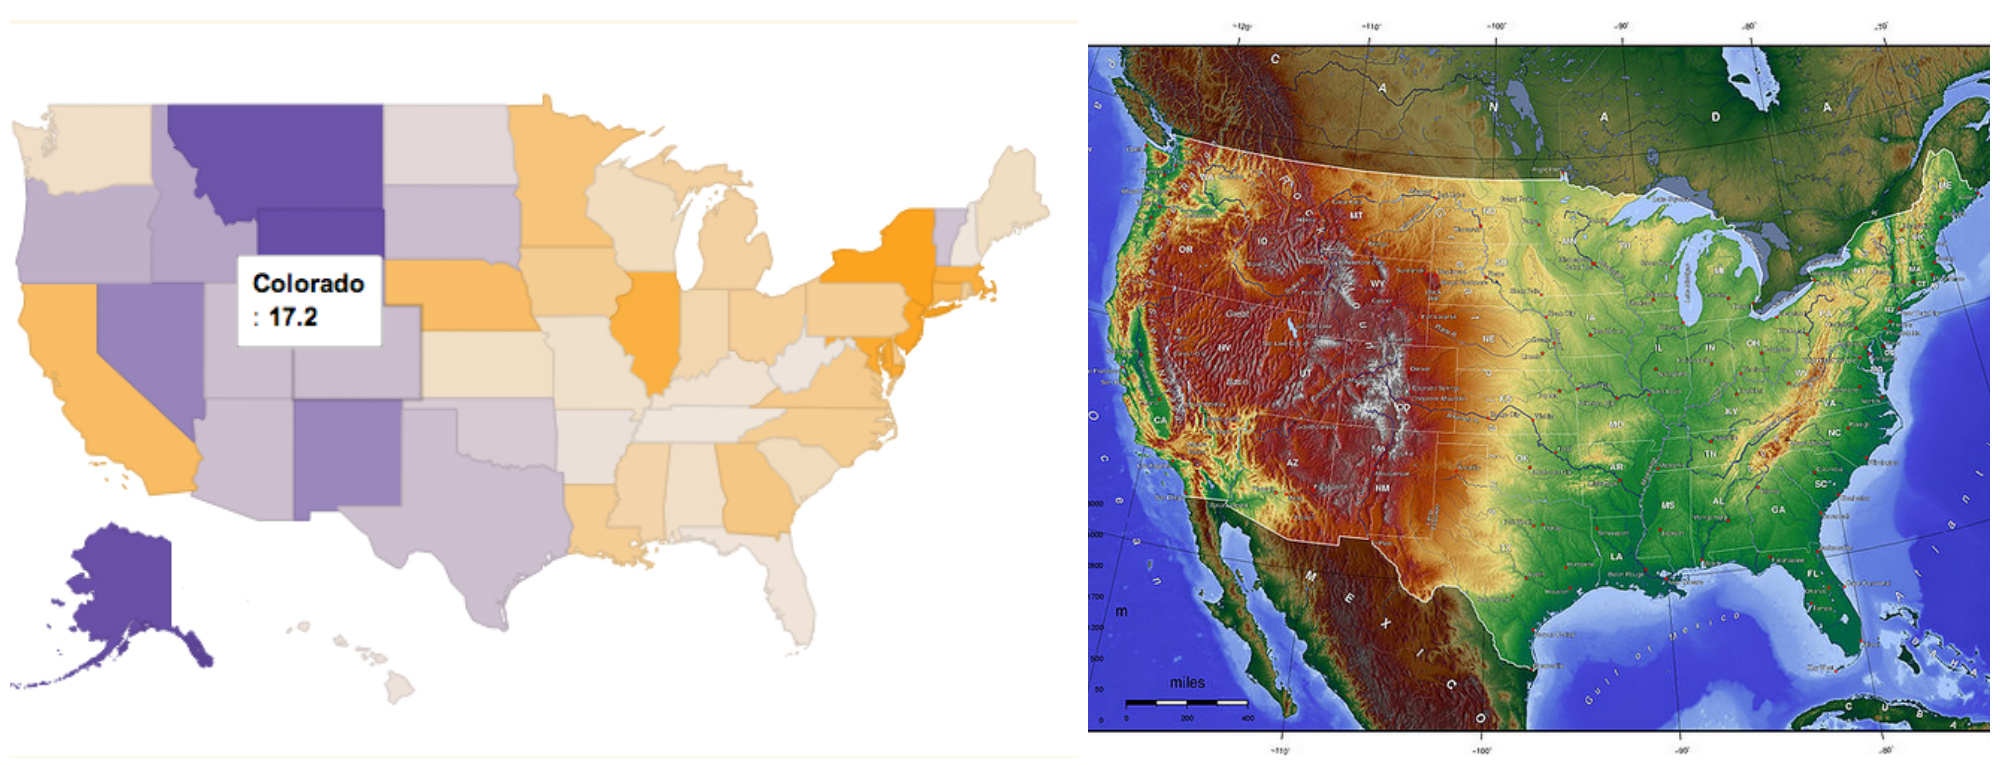 People In Colorado Are Now Shooting Themselves Faster Than They - Elevation map of usa